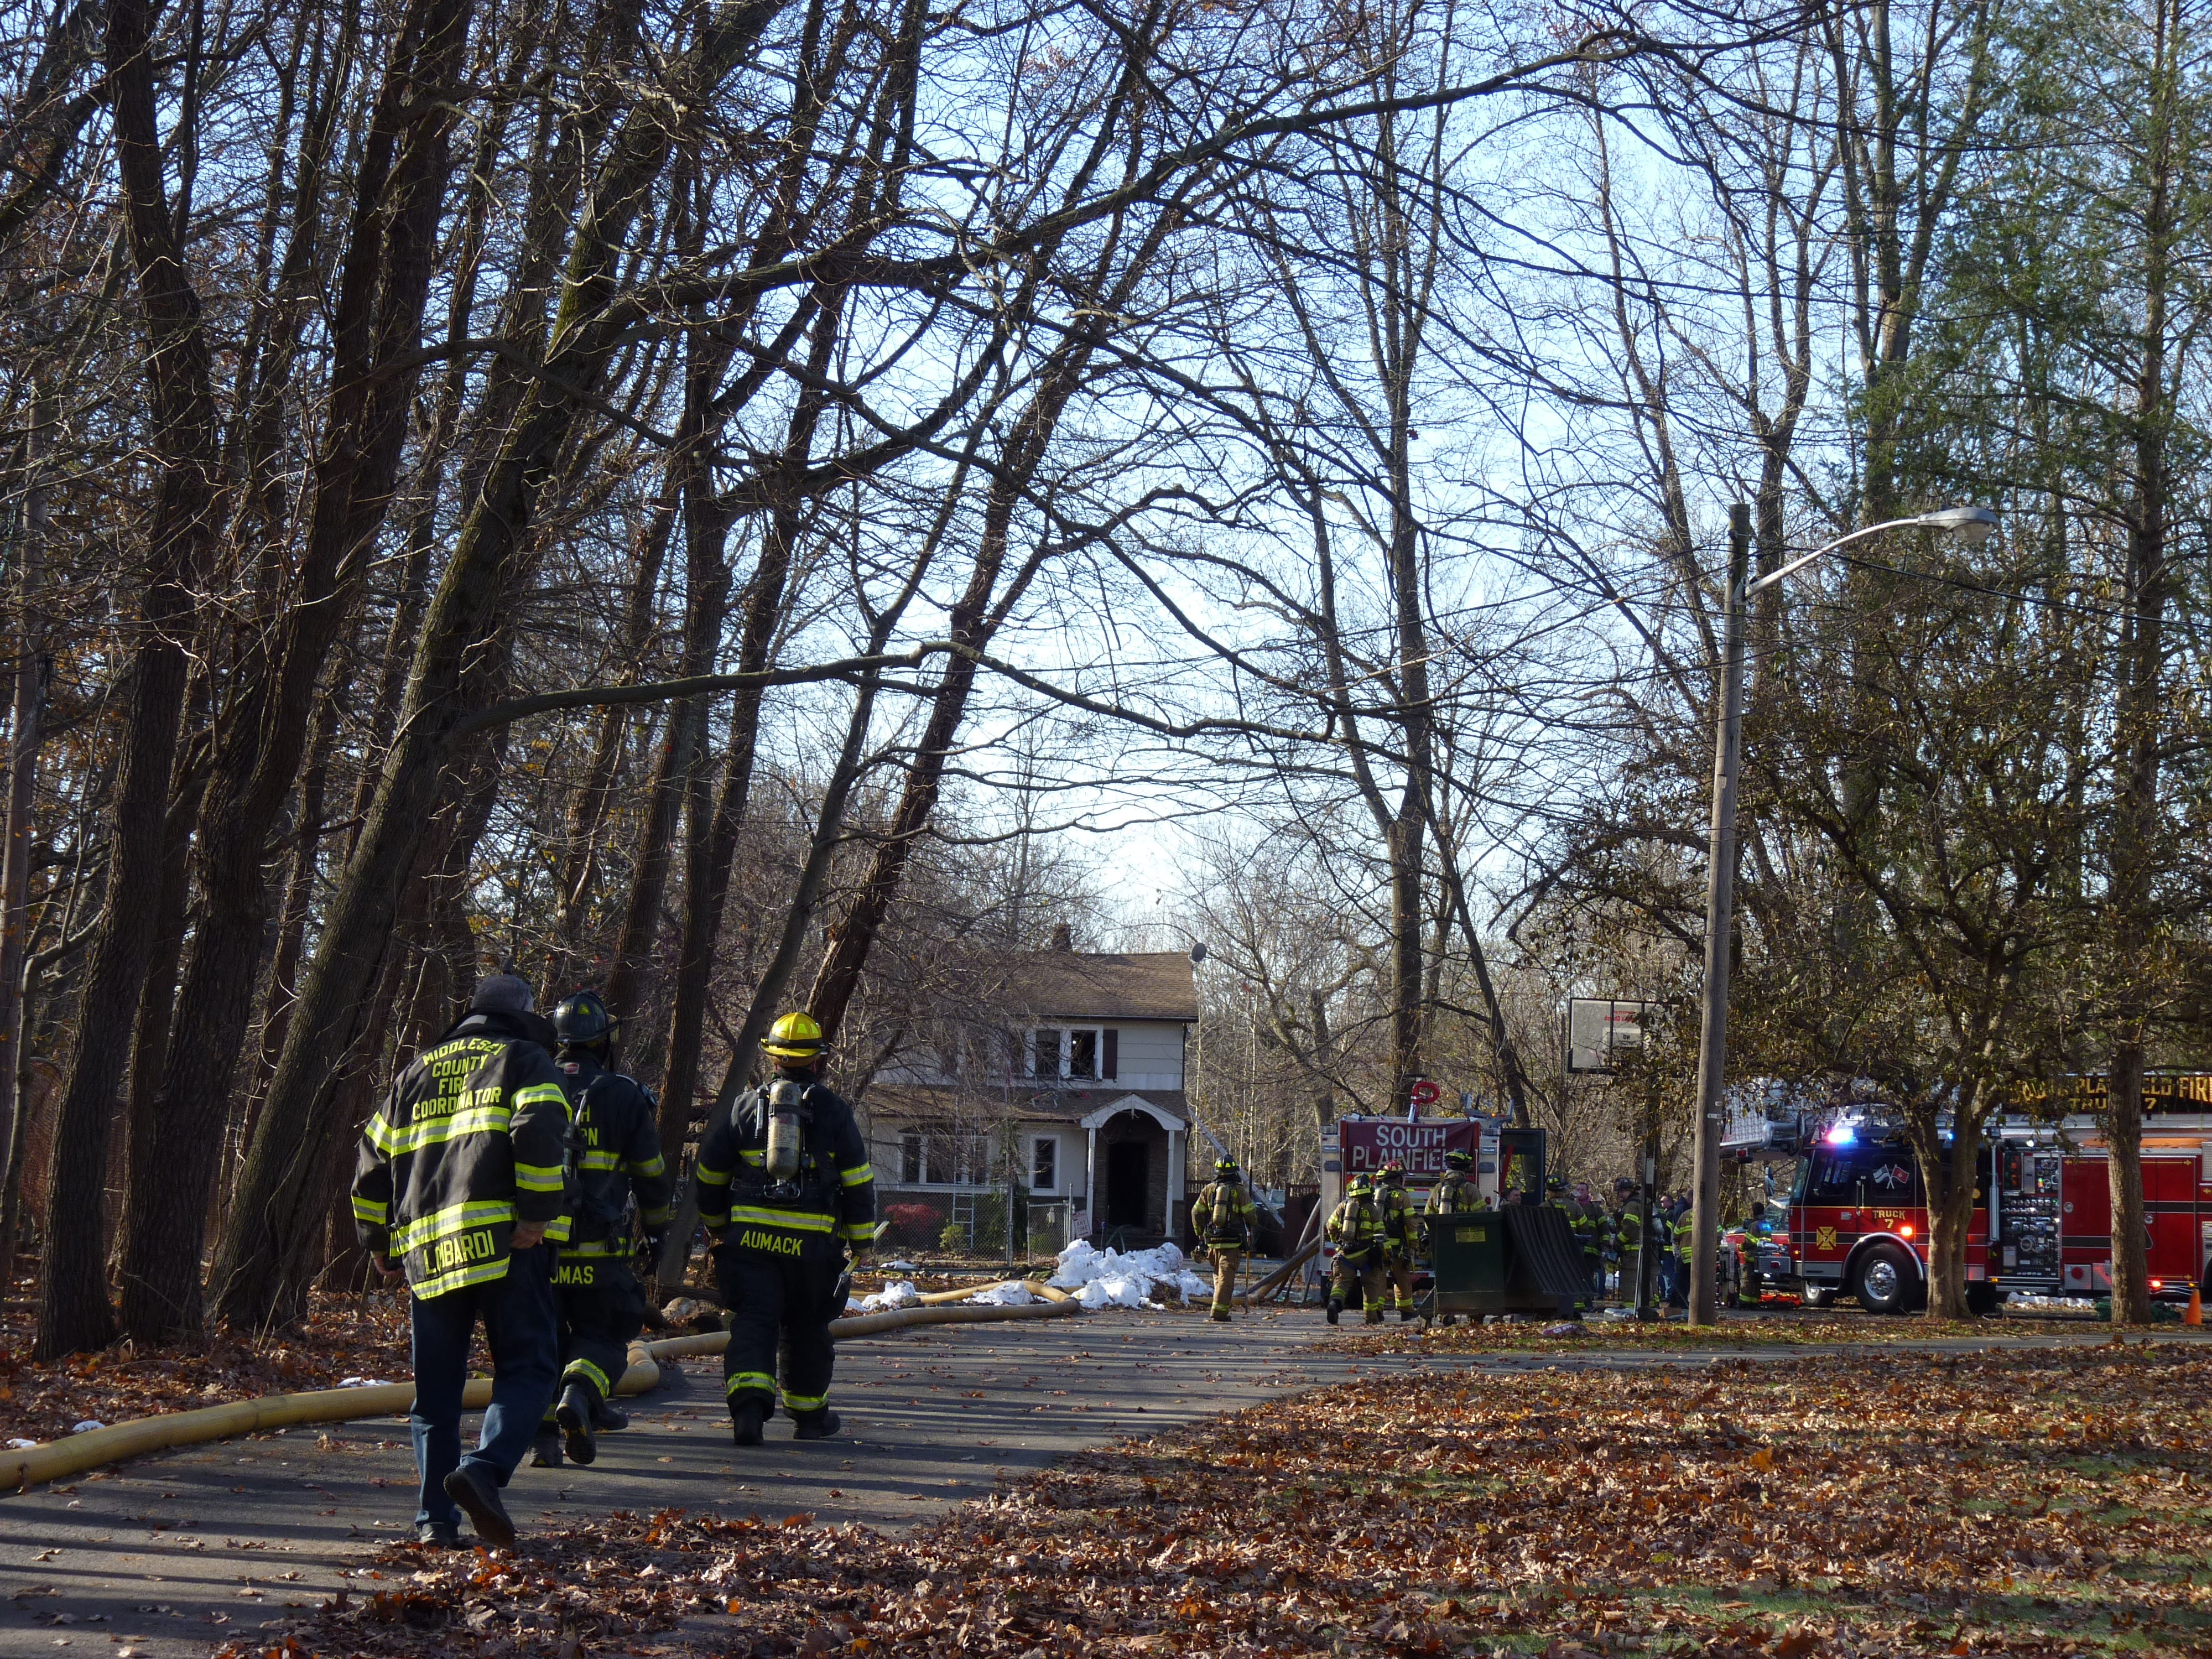 Firefighters from several municipalities were able to knock down a fire in South Plainfield located at 1500 Park Ave. Officials said there were no fatalities.